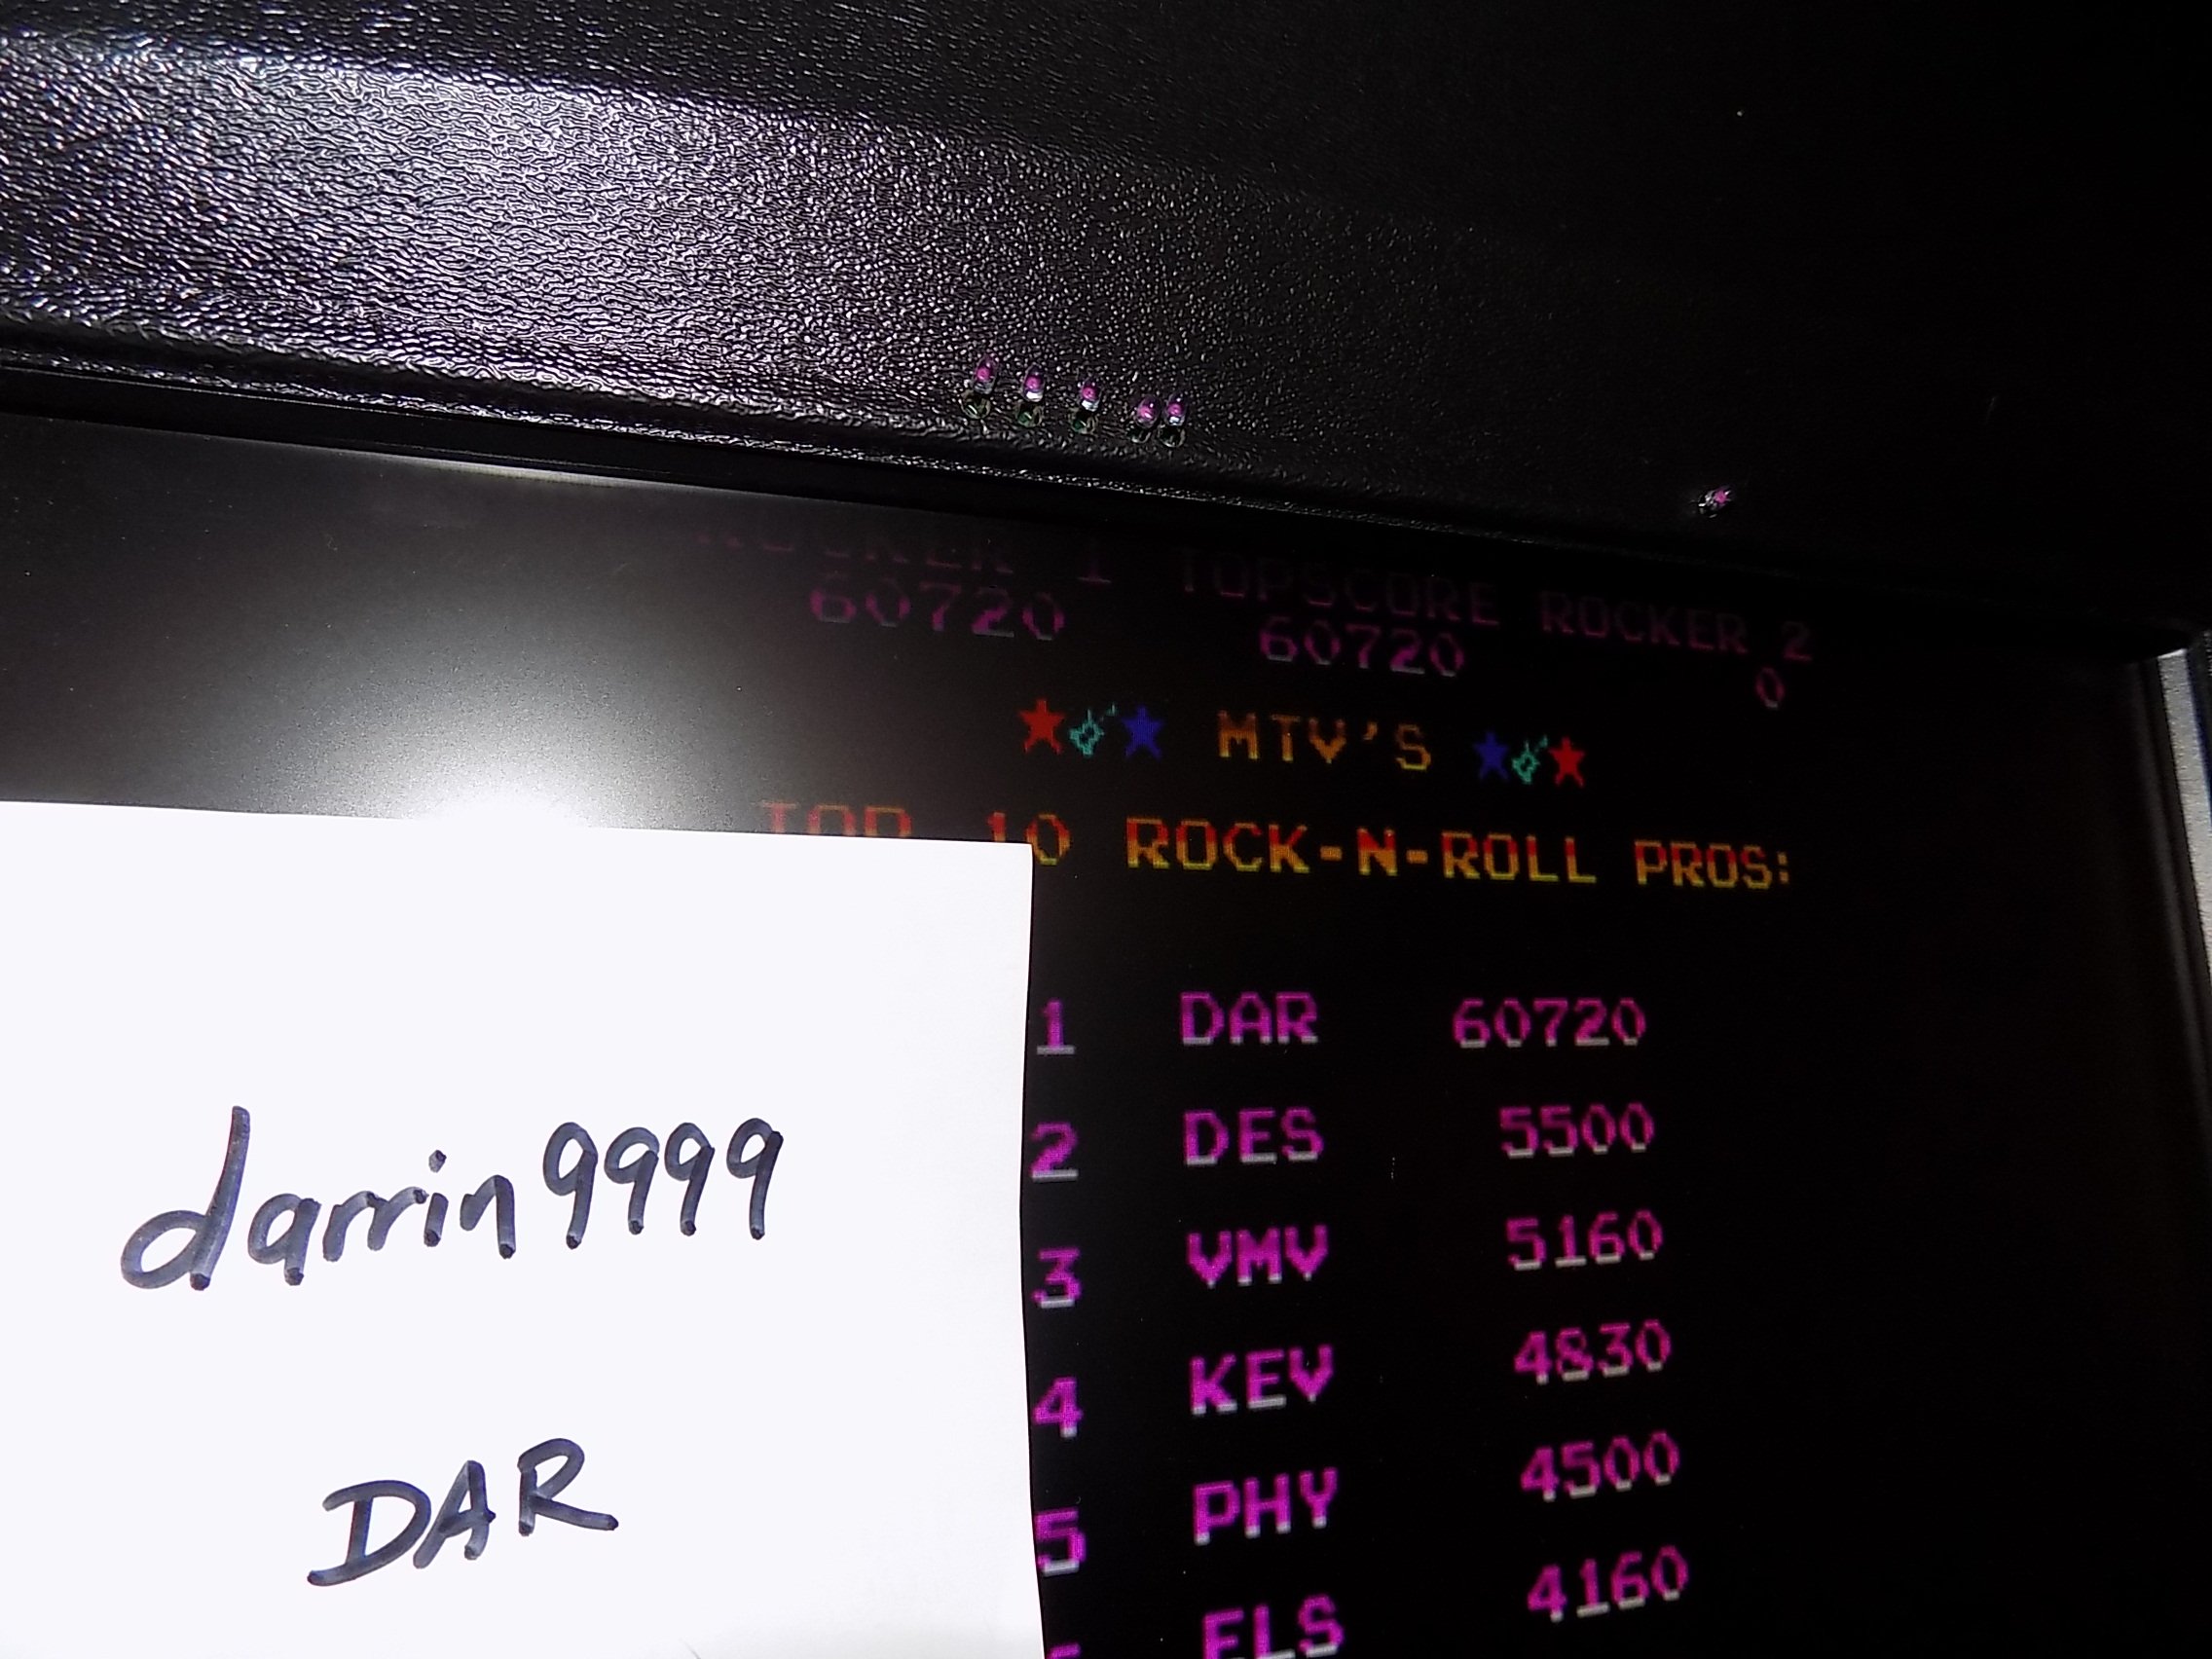 darrin9999: MTV Rock-N-Roll Trivia Part 2 [rocktrv2] (Arcade Emulated / M.A.M.E.) 60,720 points on 2018-09-14 13:19:51